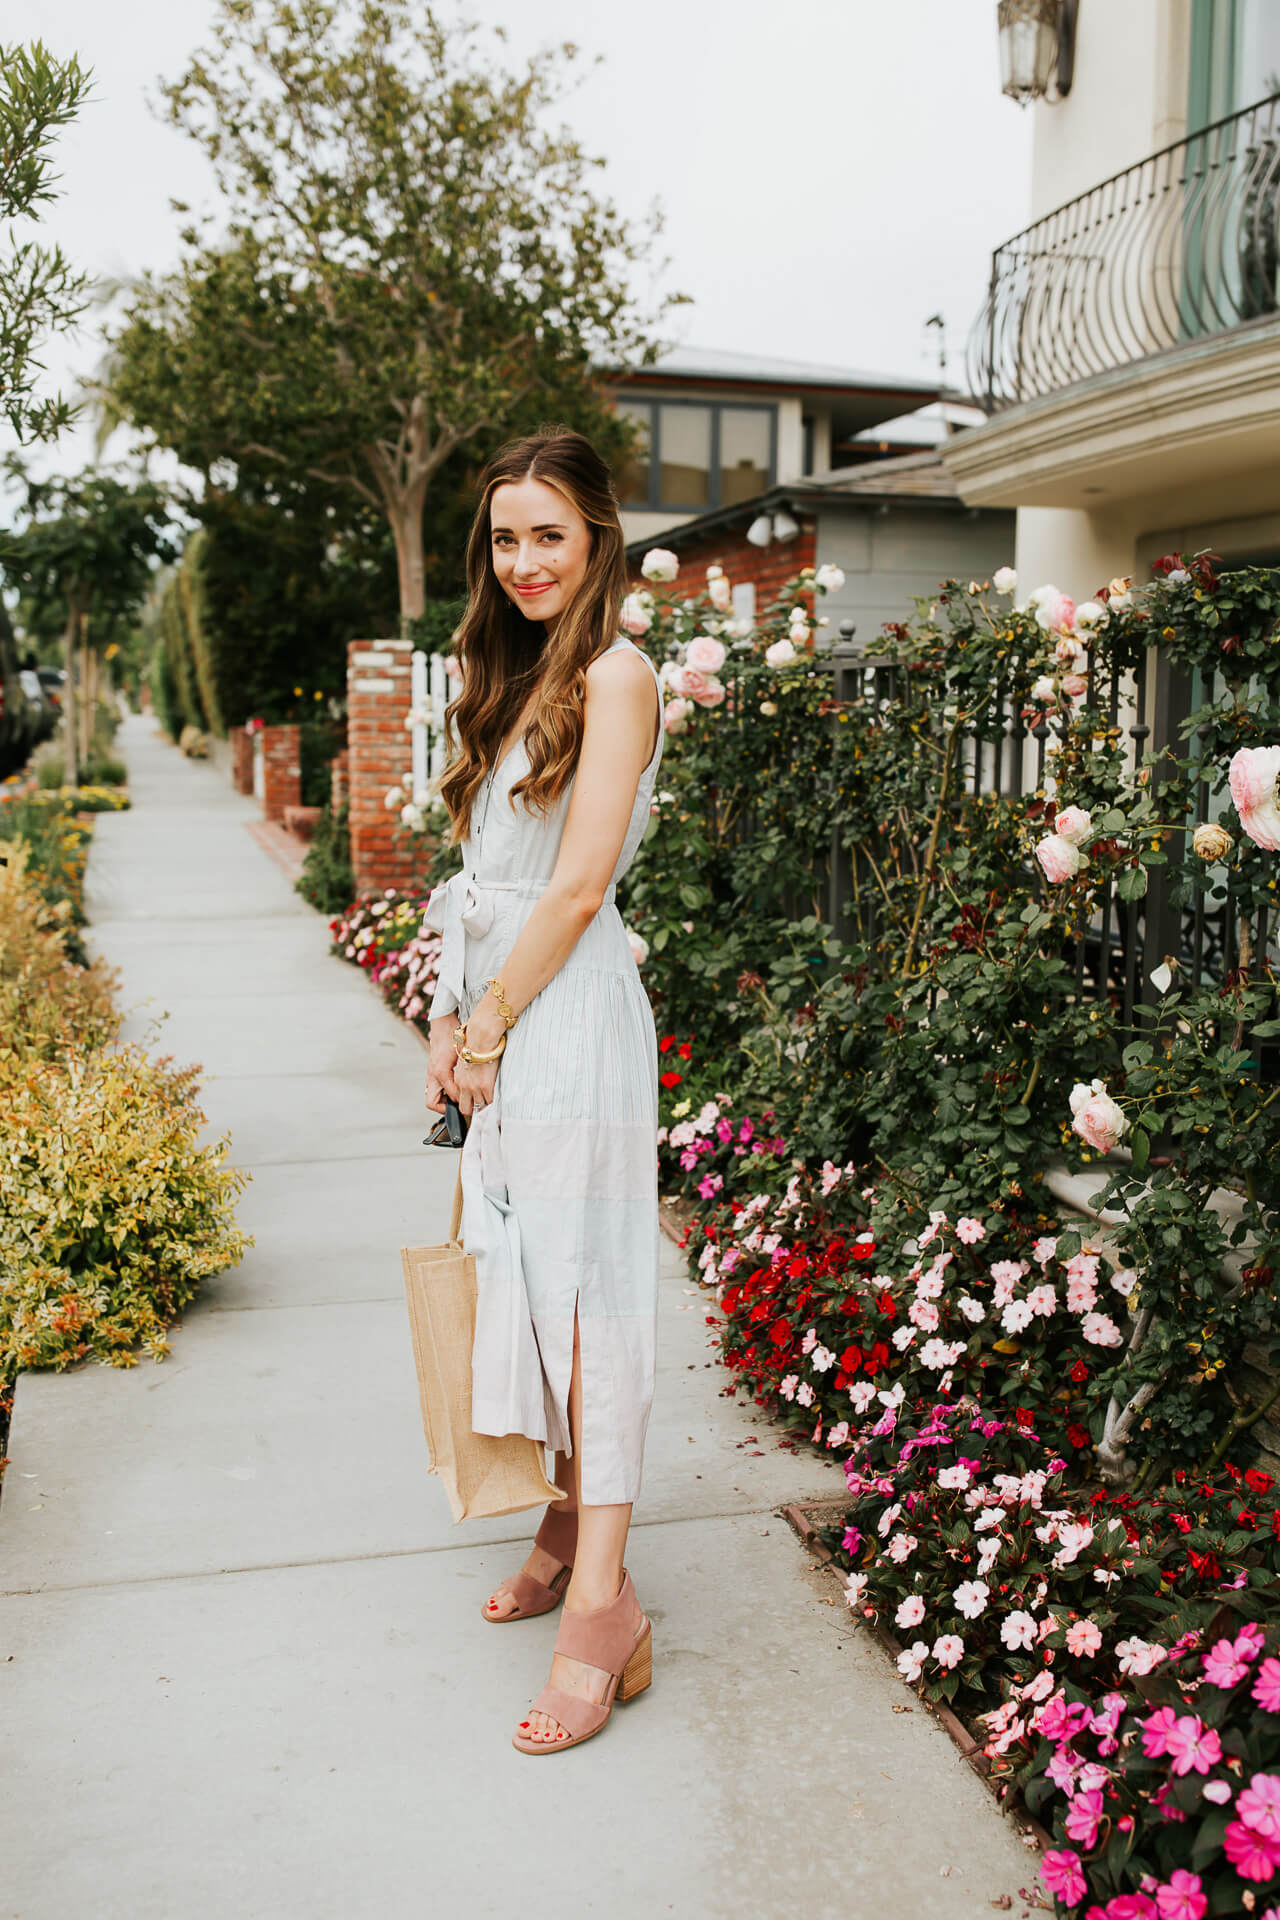 This lightweight cotton dress and pink mules combo is almost too chic!   M Loves M @marmar